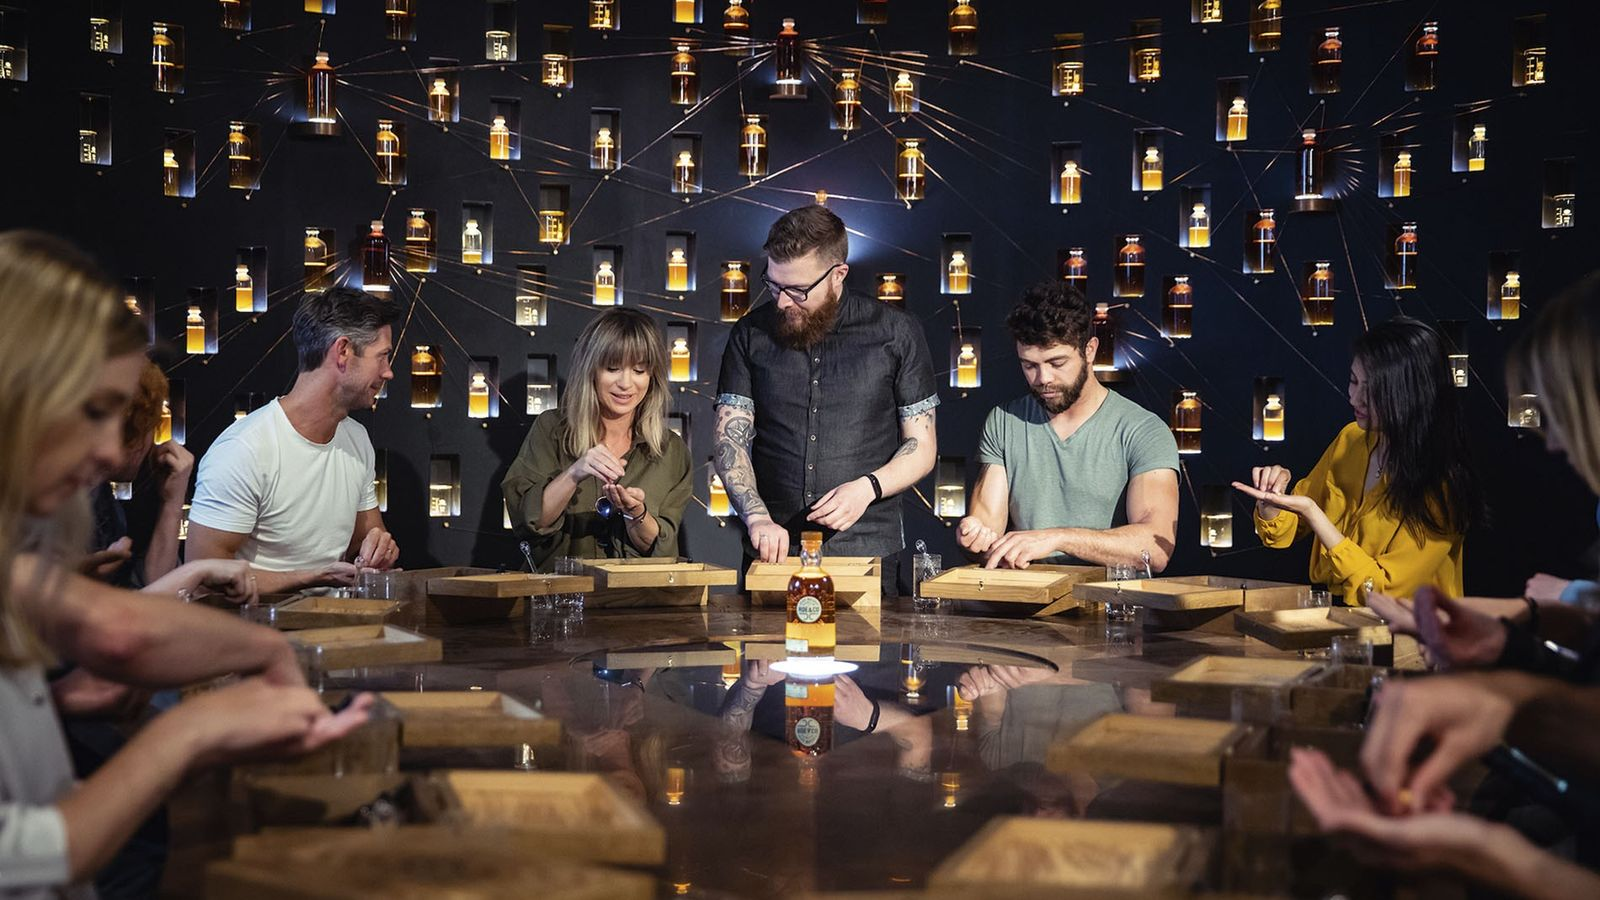 A tasting tour at Roe & Co distillery in the historic The Liberties neighbourhood in Dublin